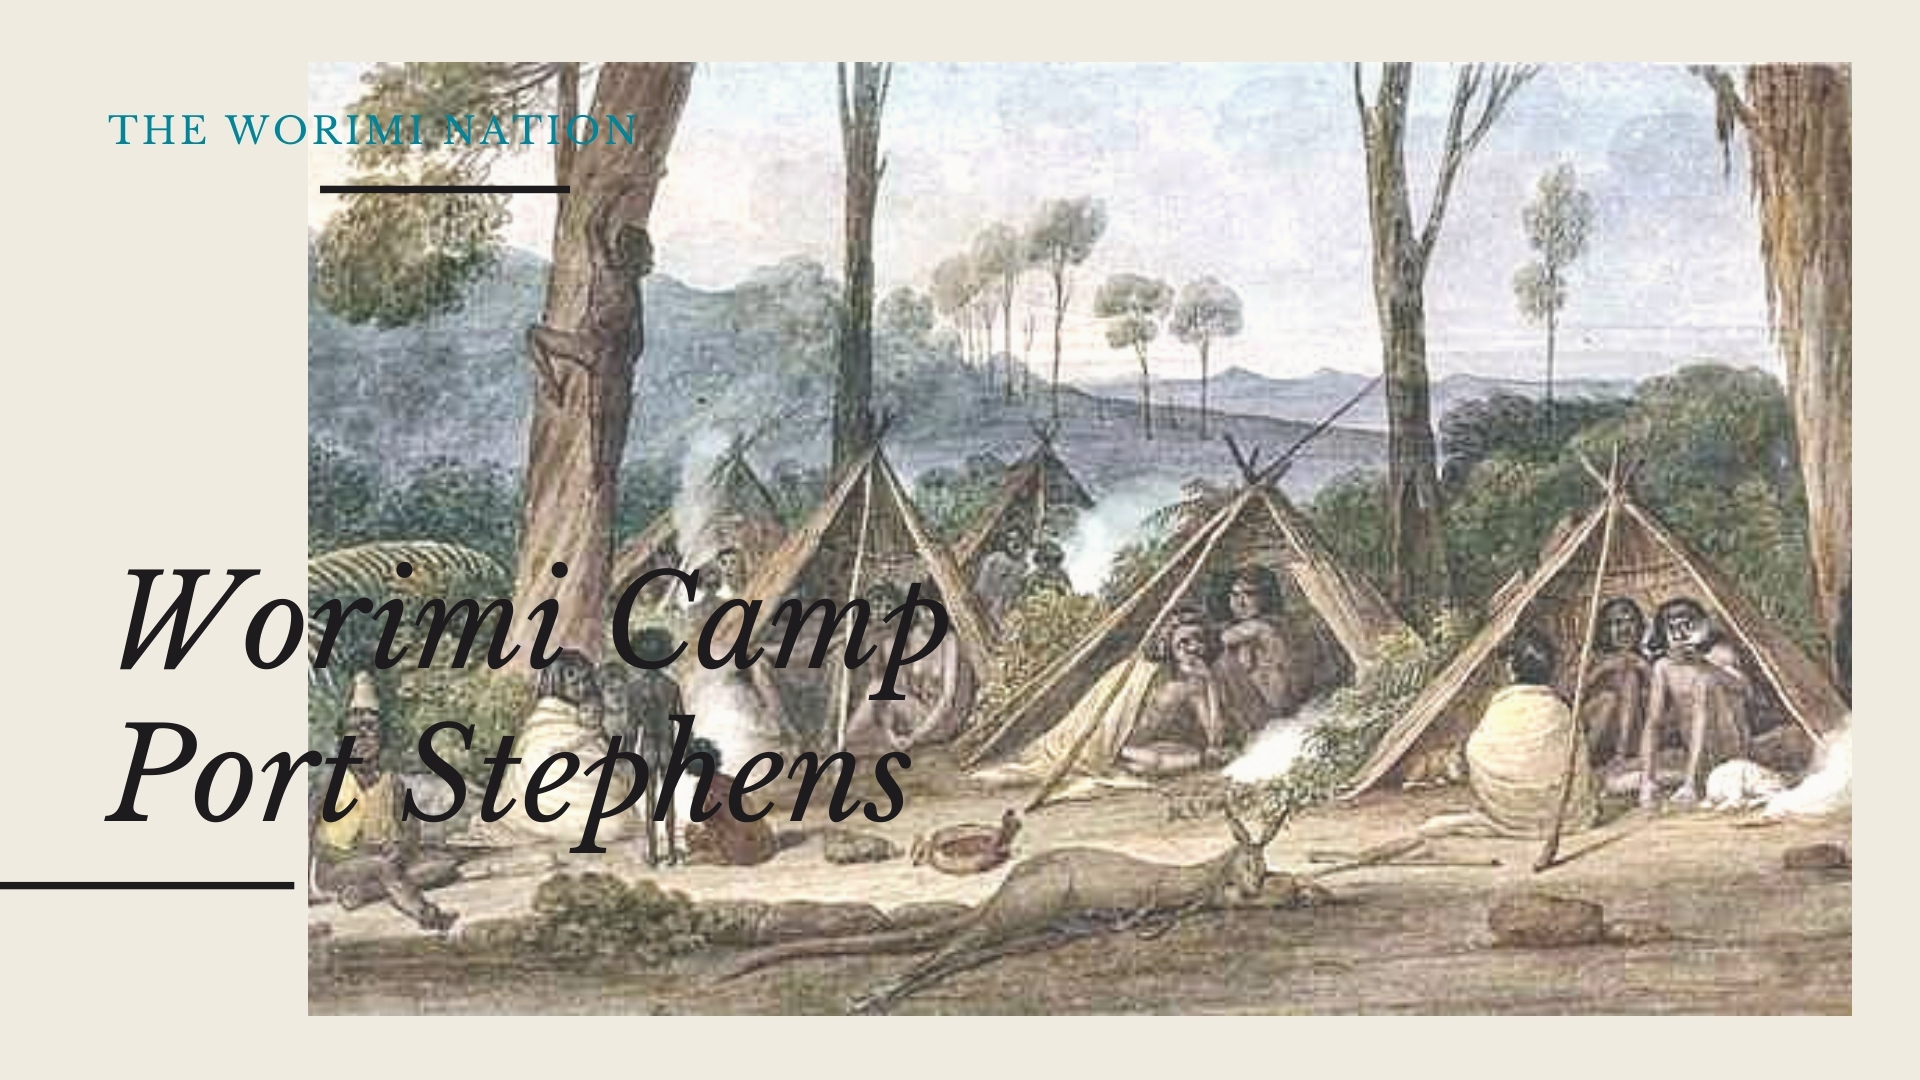 Worimi Camp, Port Stephens